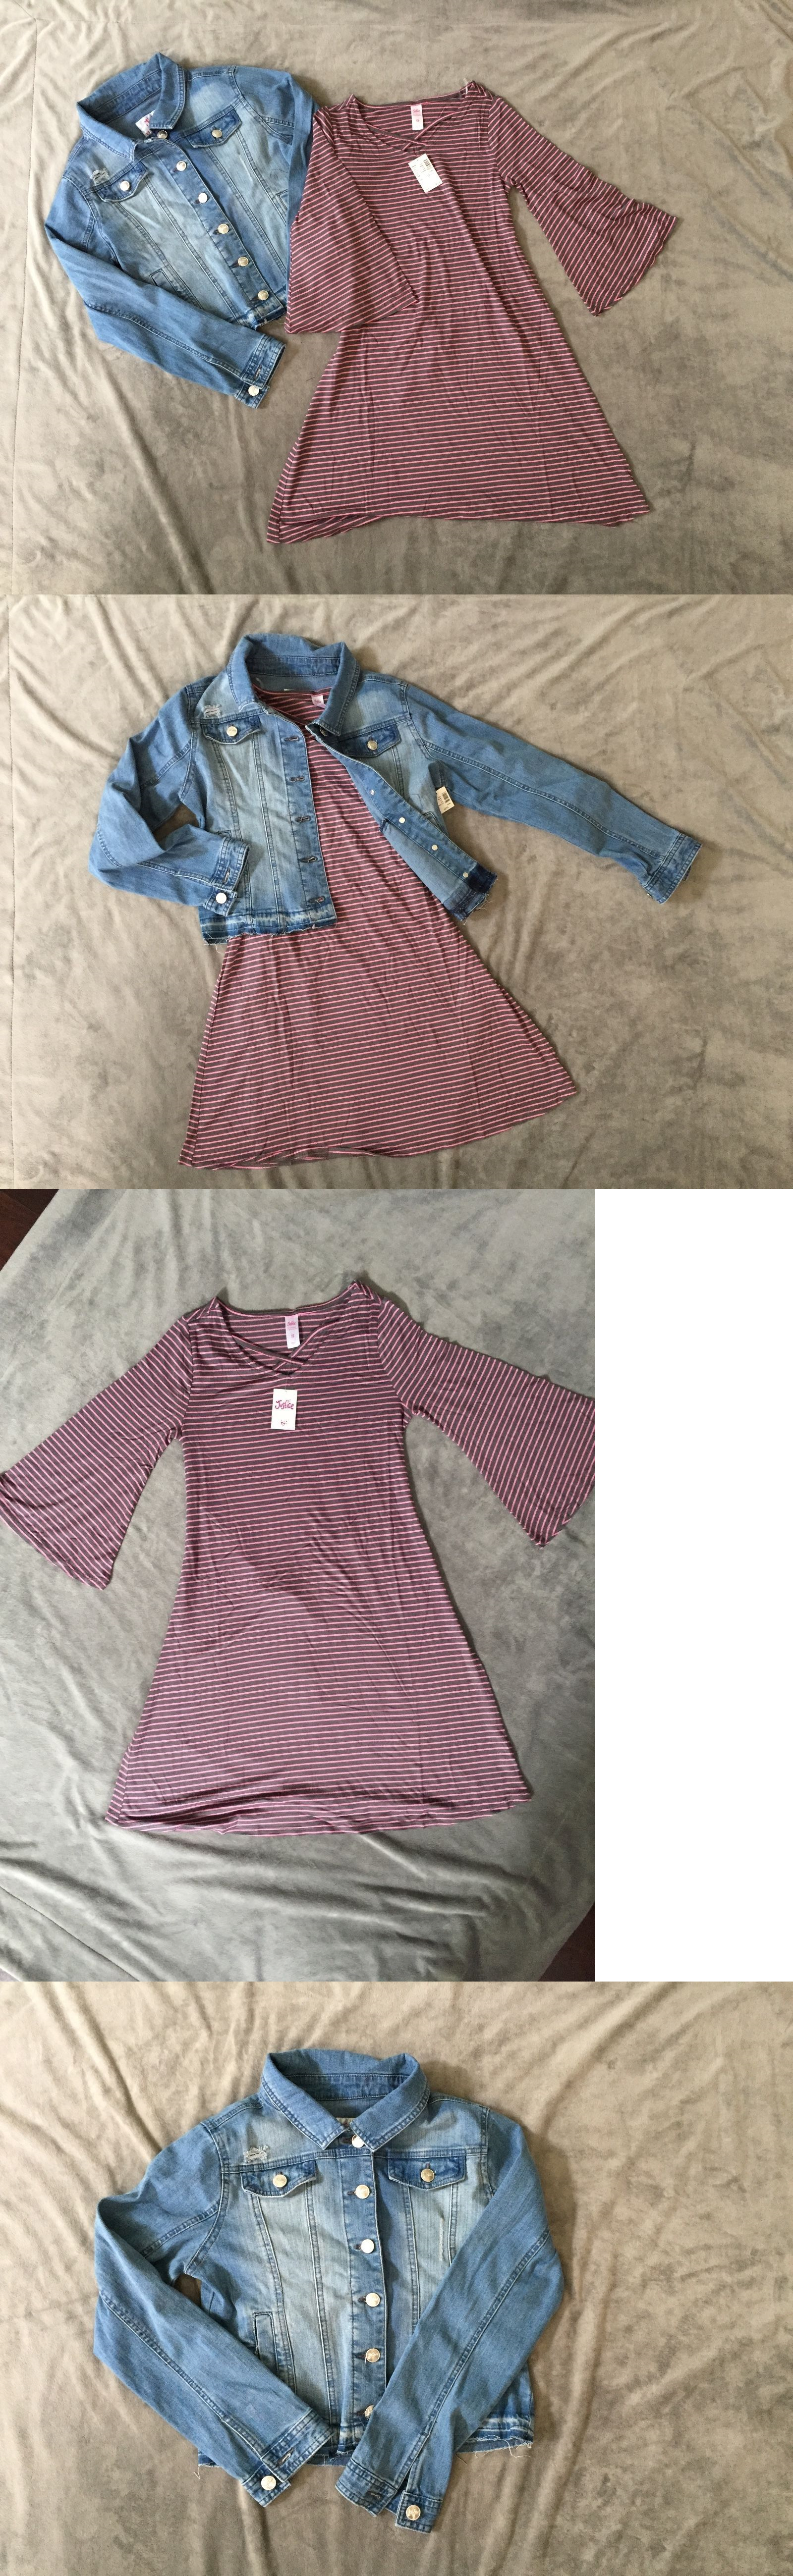 Pink dress with denim jacket  Outfits and Sets  Nwt Justice Destroyed Jean Jacket And